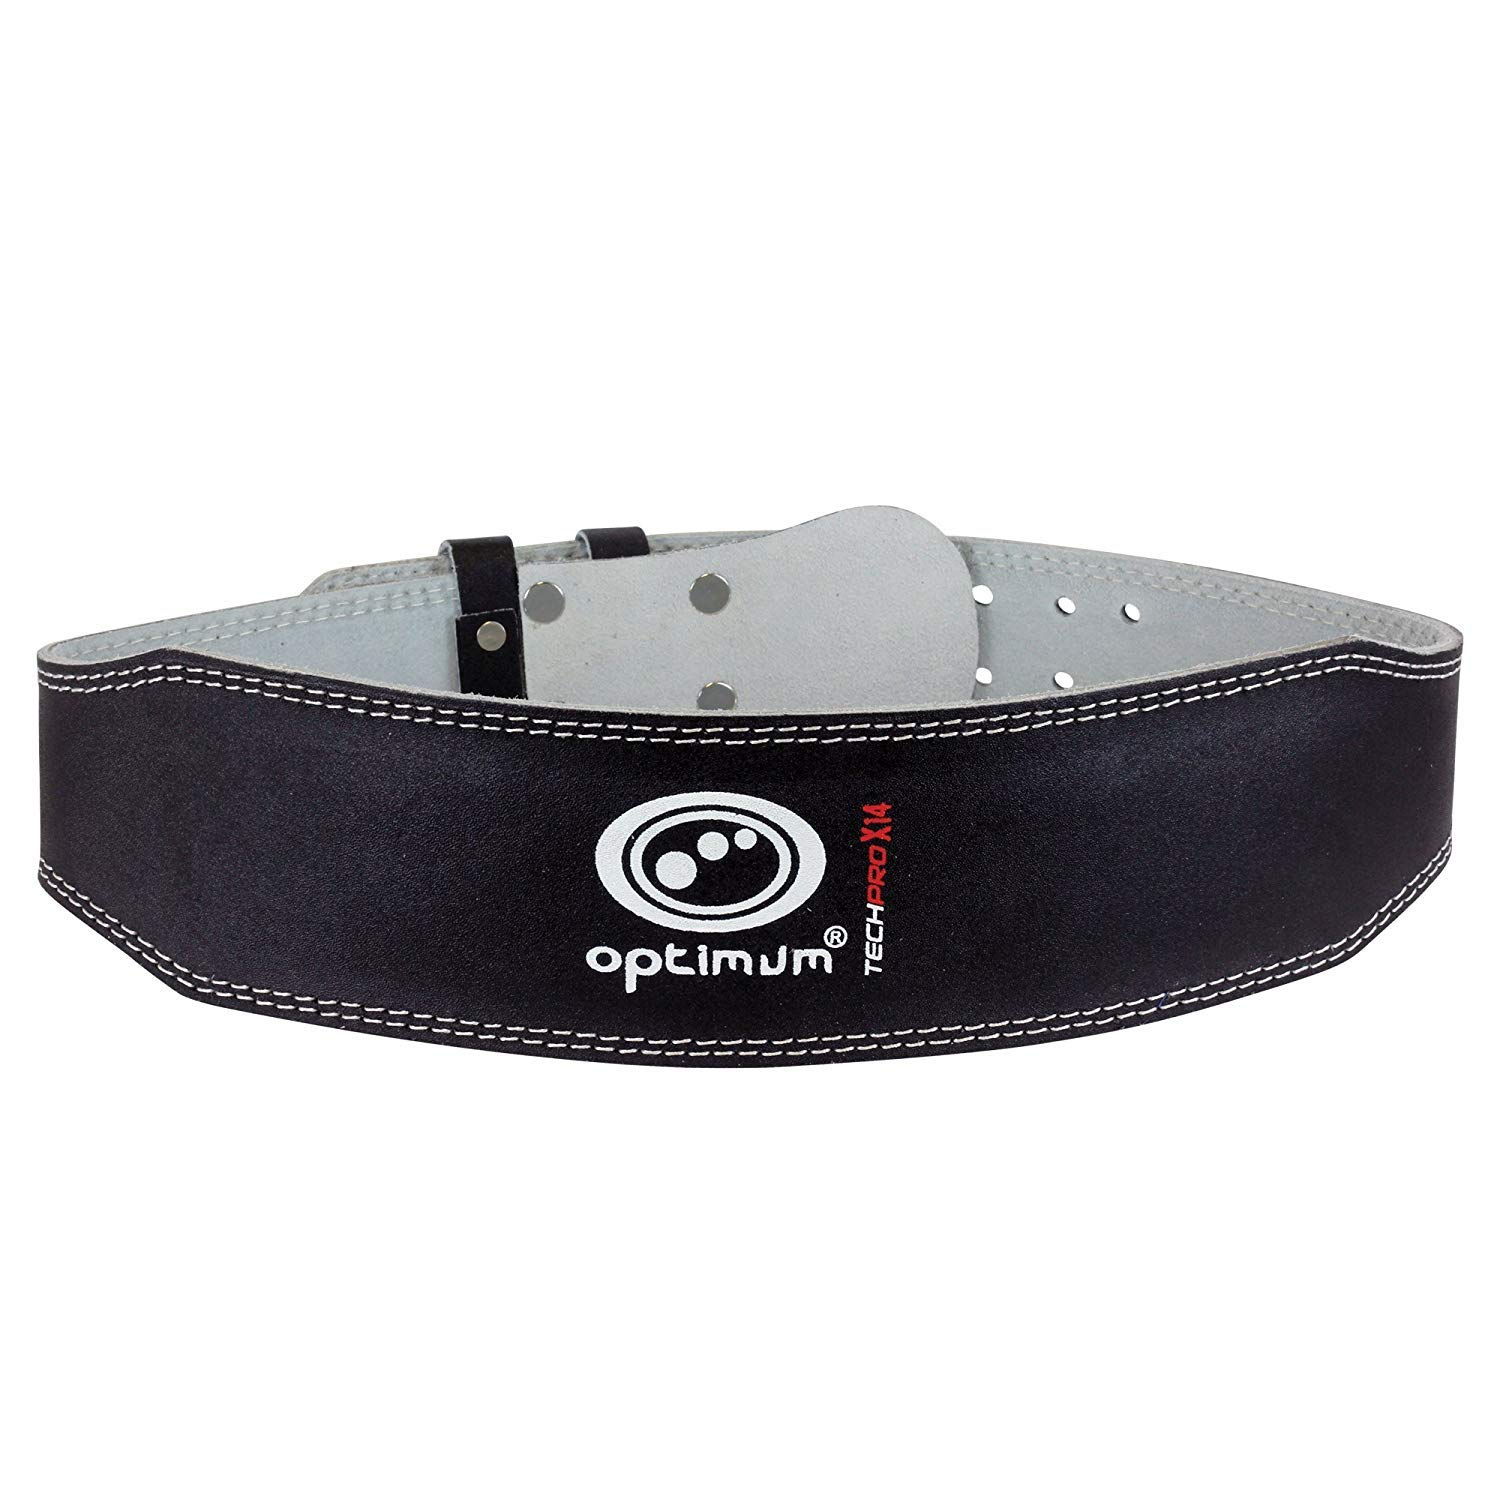 Optimum Tech Pro X14 Leather Weight Lifting Belt